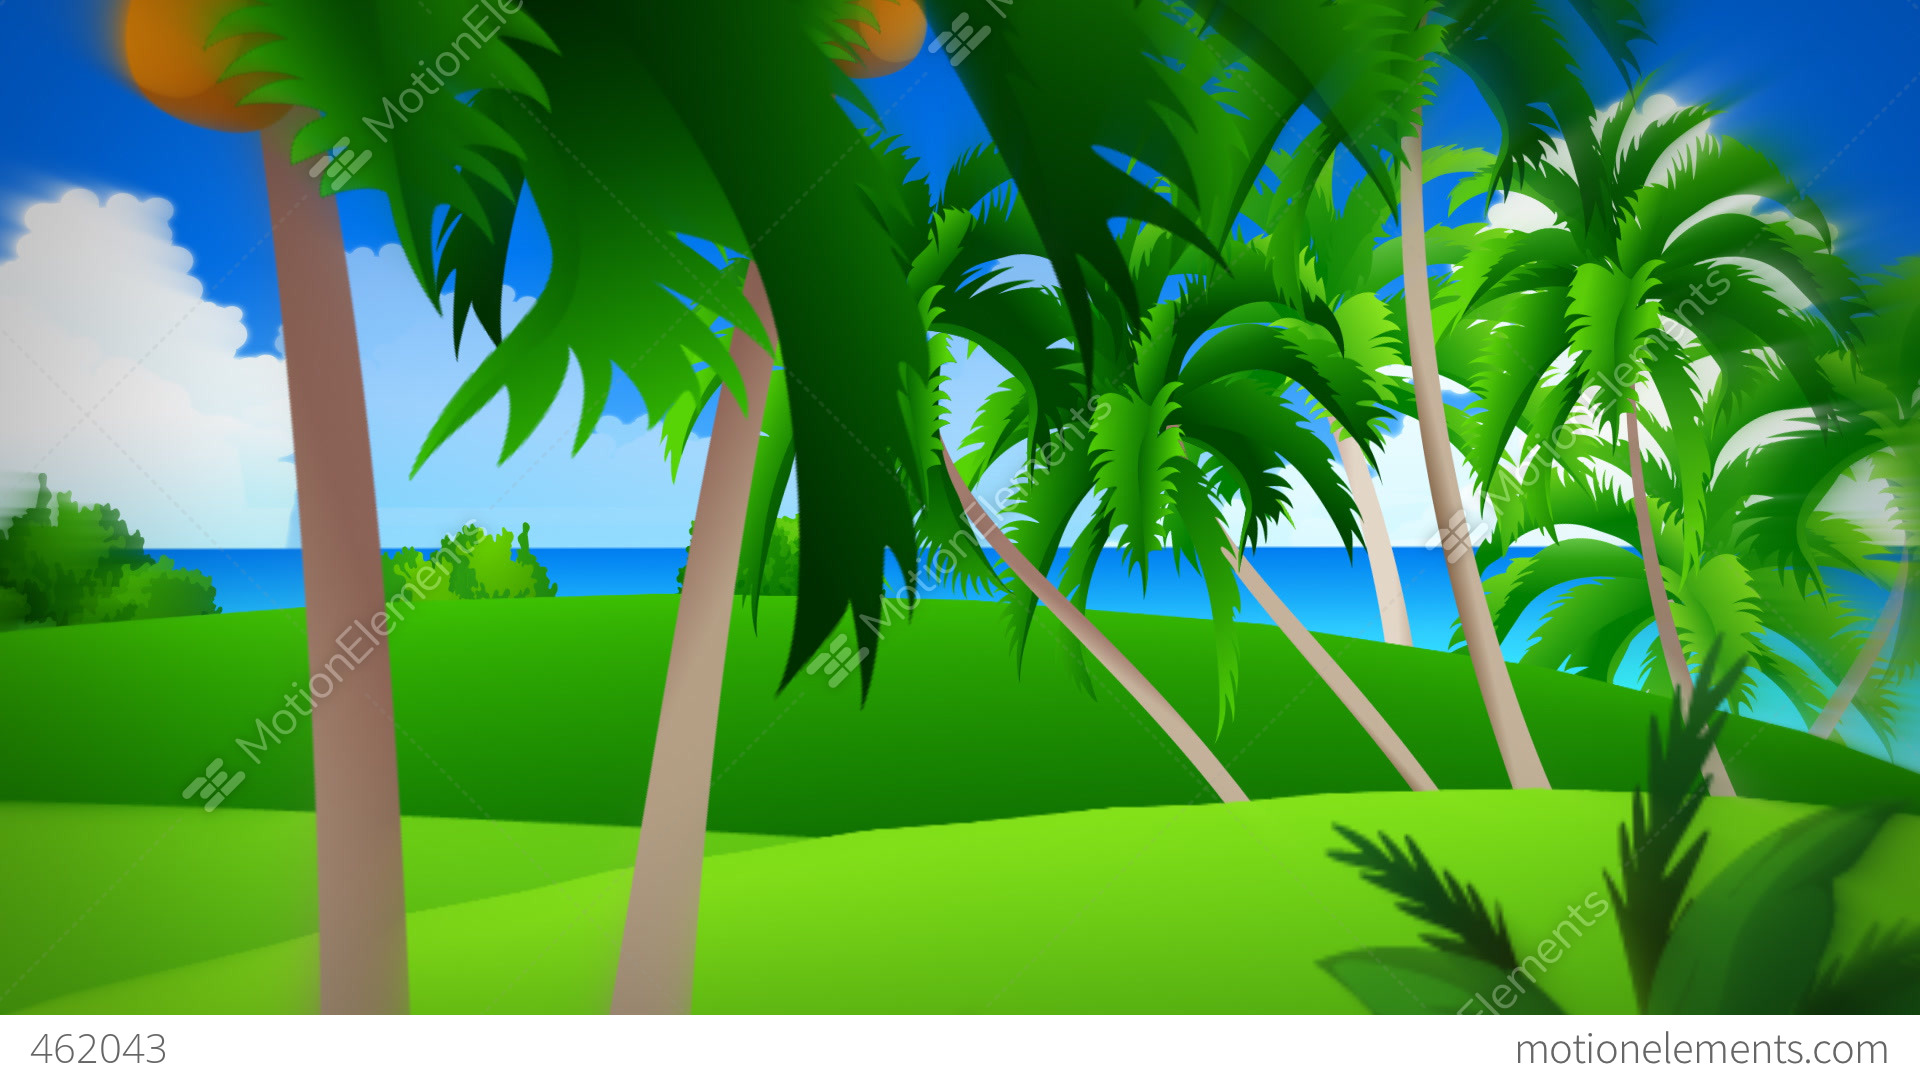 Animated Background For Television Presentations Stock Animation ...